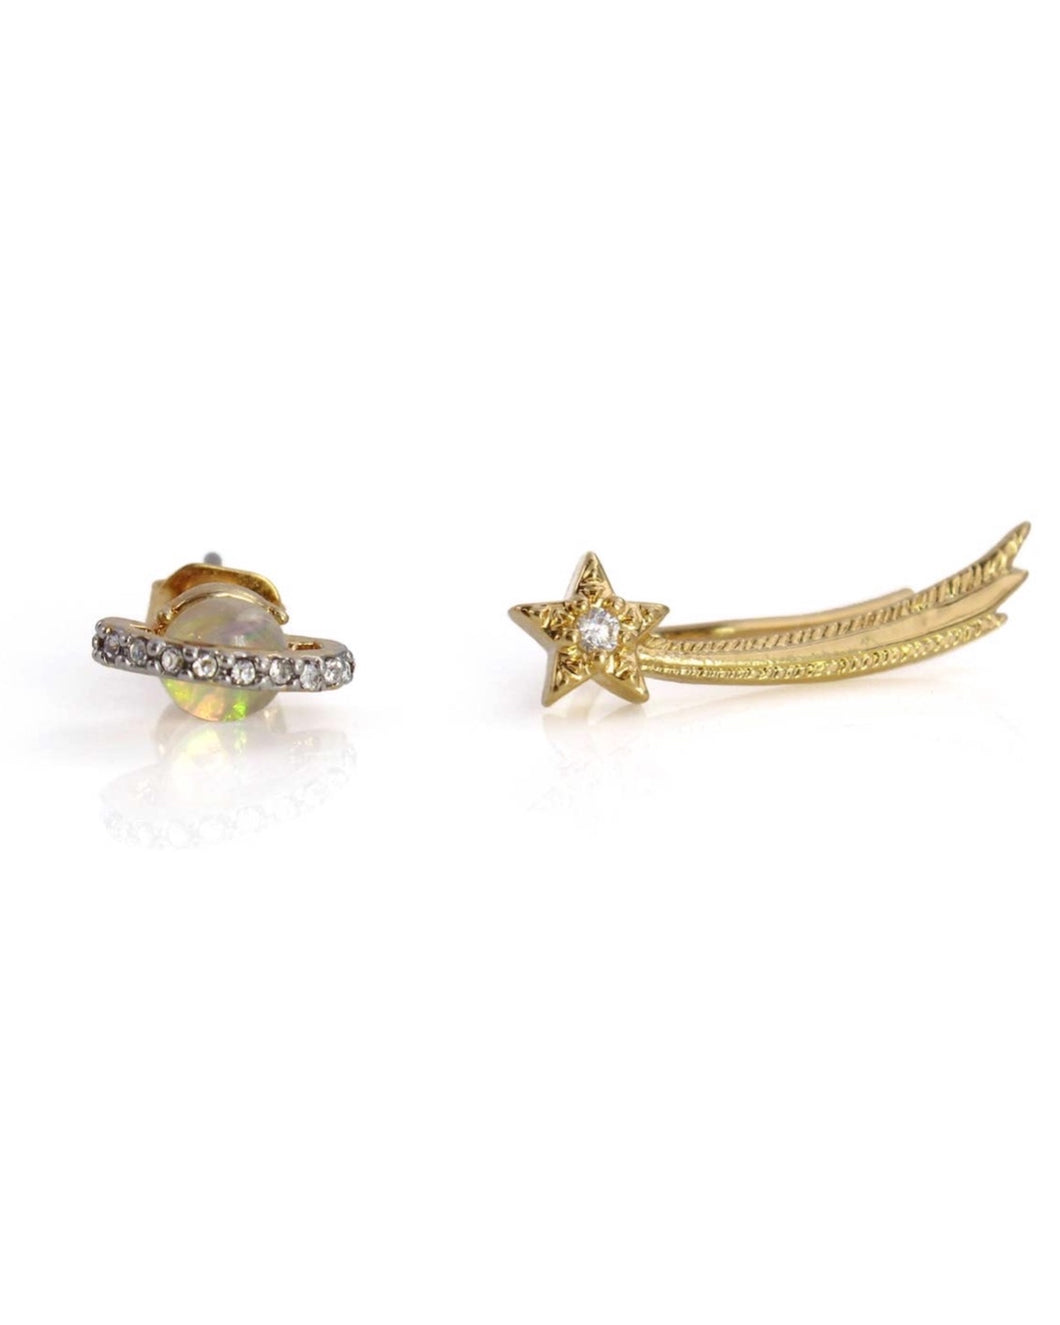 PLANET + SHOOTING STAR EARRINGS